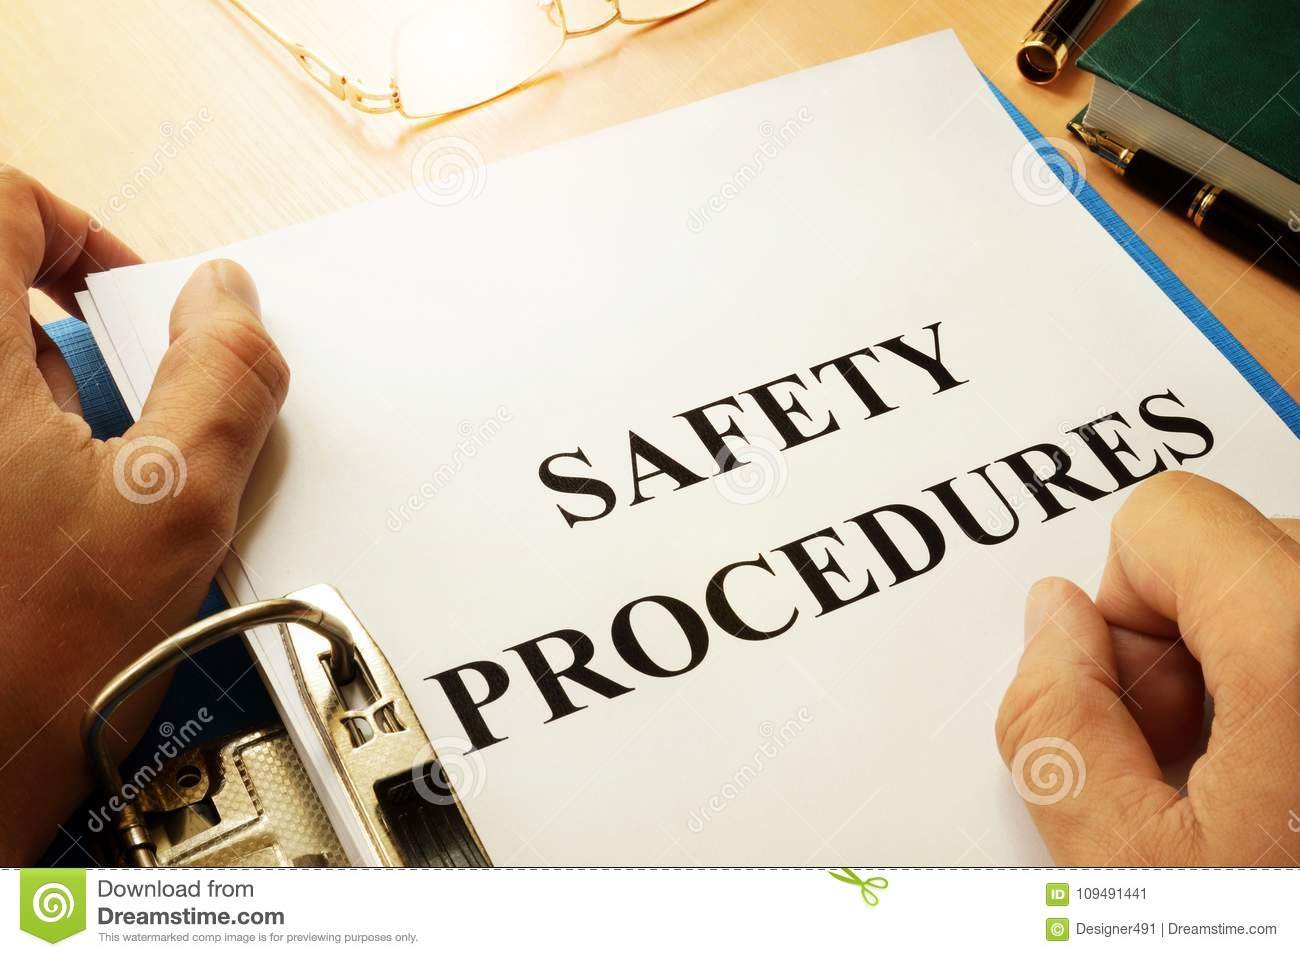 Safety procedures in a folder. Work Safety concept.